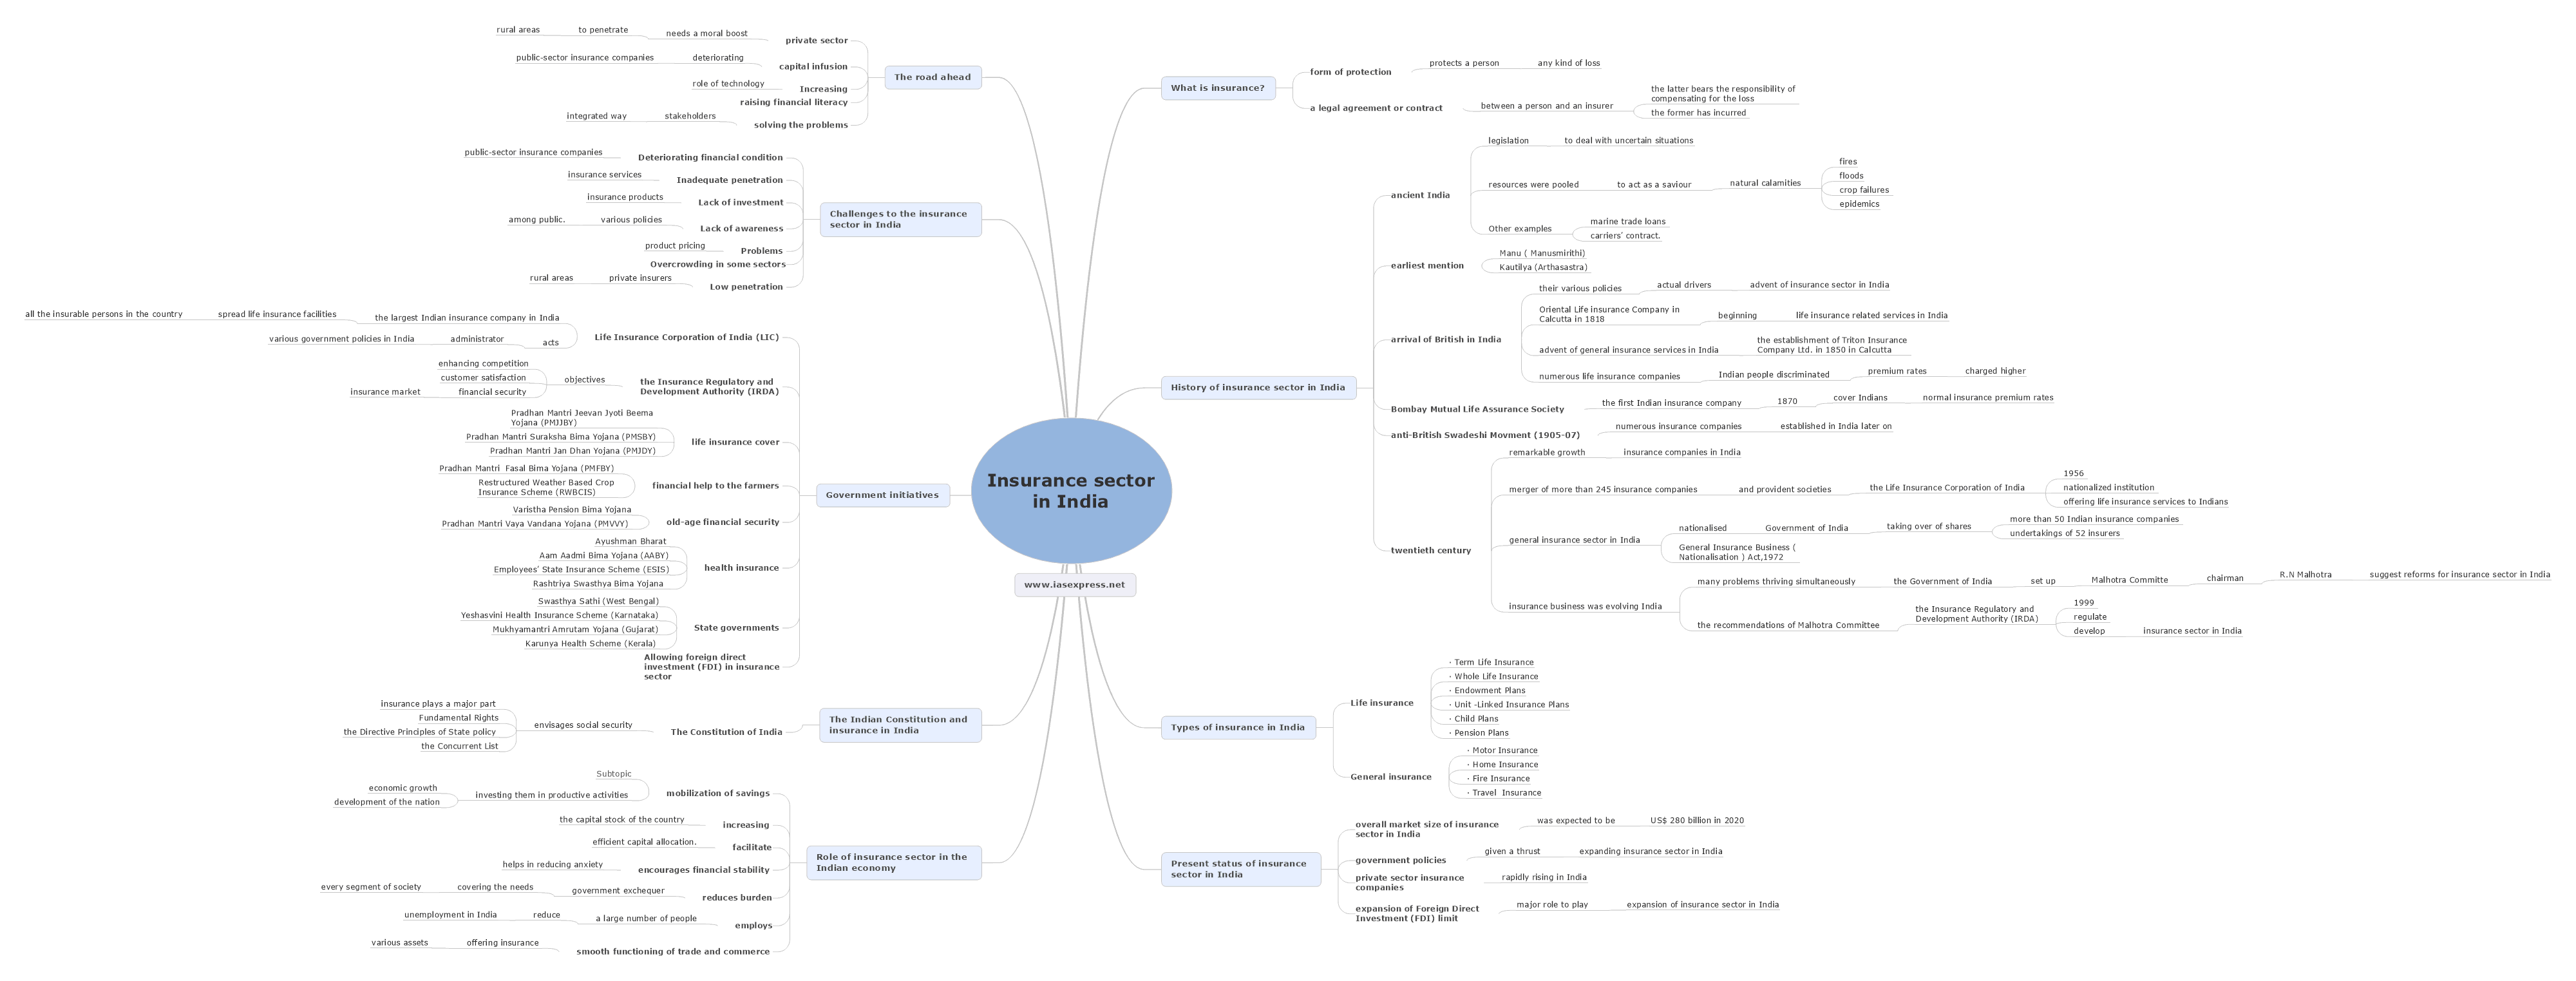 Insurance sector in India mindmap